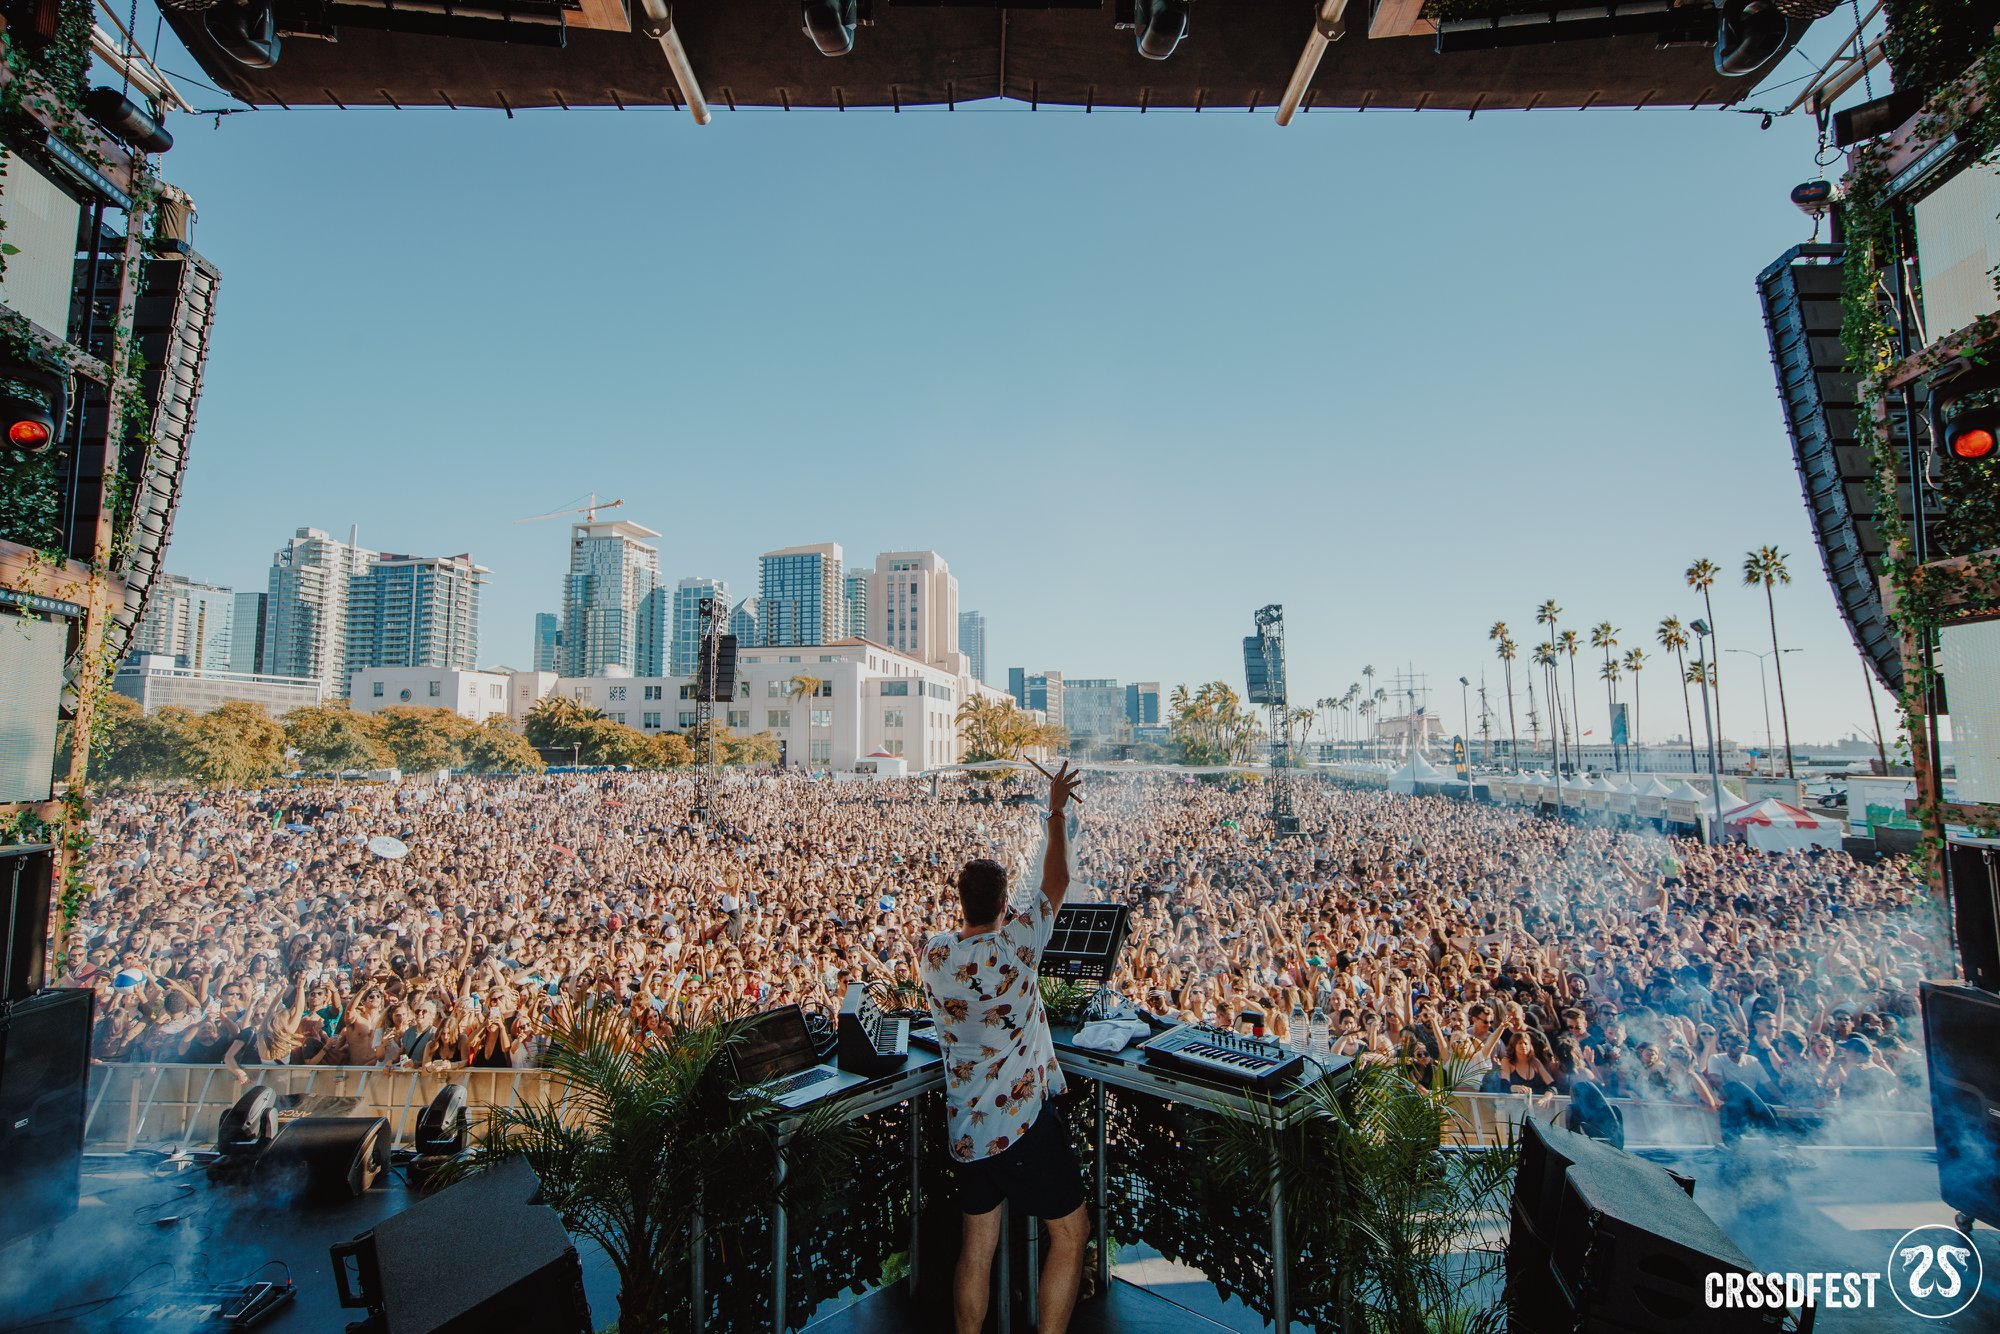 CRSSD Festival Returns To Kickoff Festival Season 2019